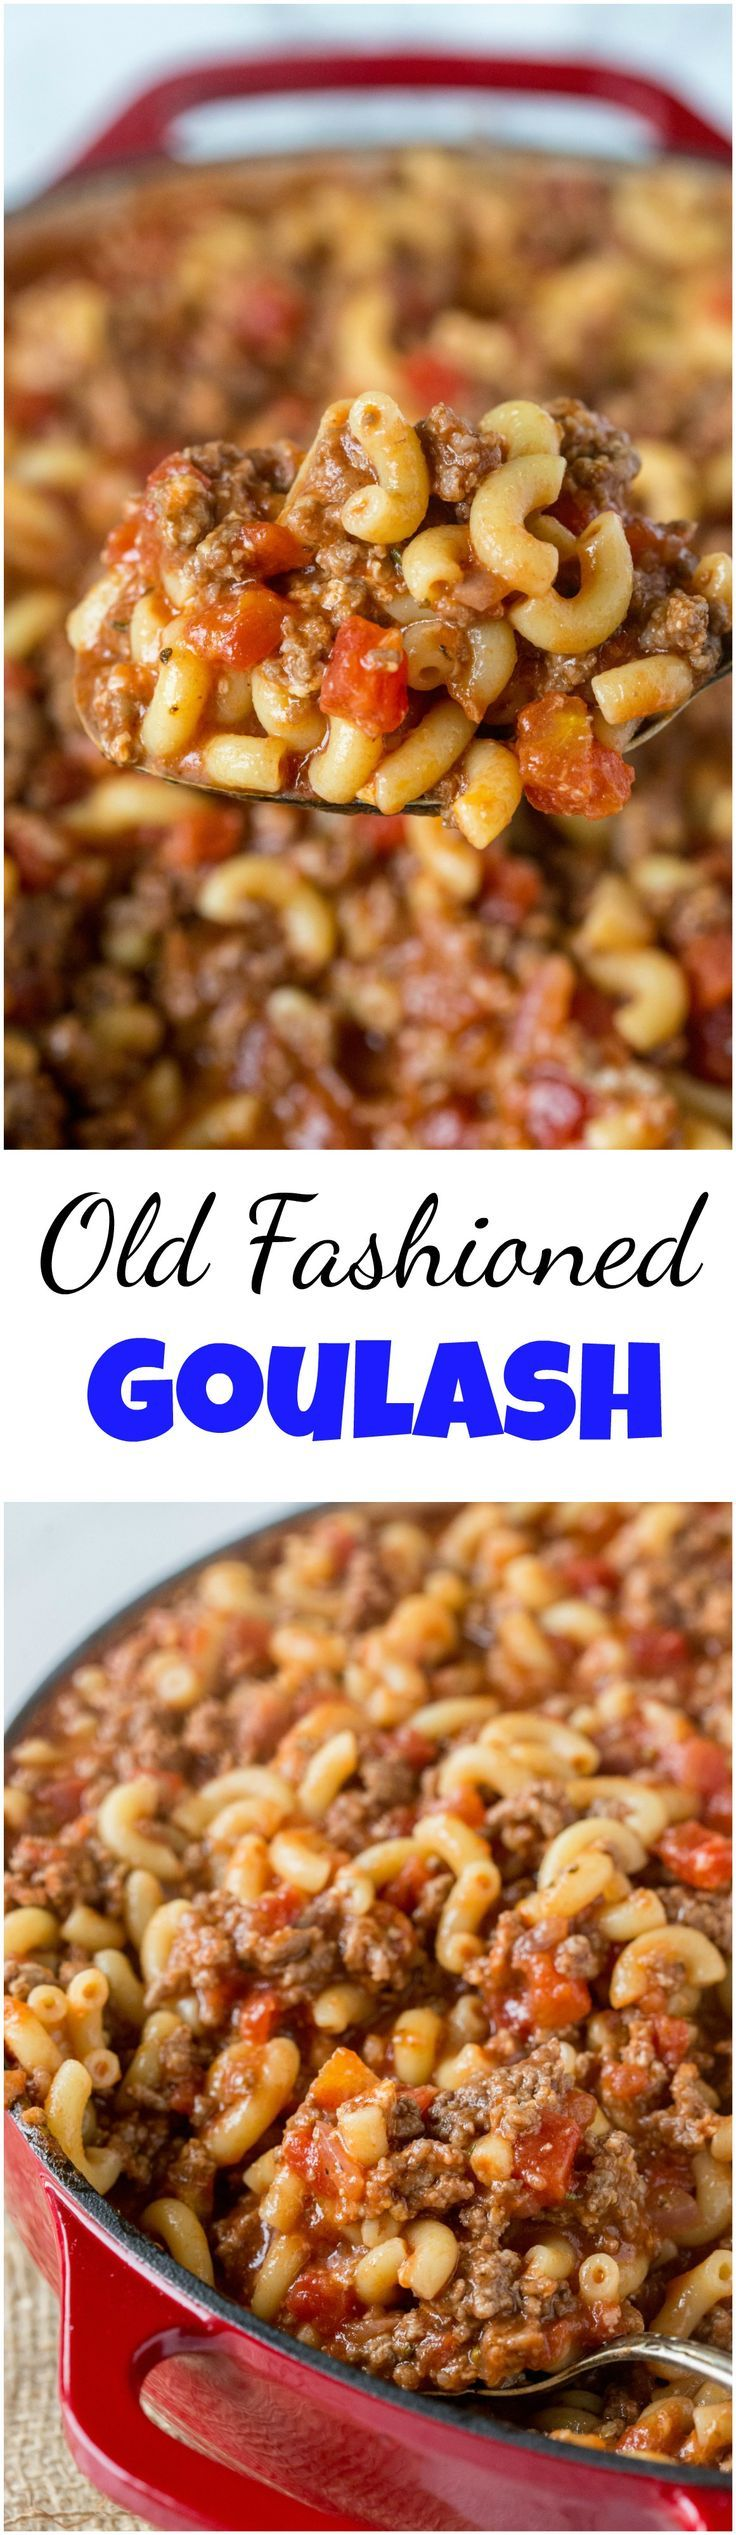 Old fashioned goulash the same american goulash recipe that you old fashioned goulash the same american goulash recipe that you grew up with a forumfinder Images